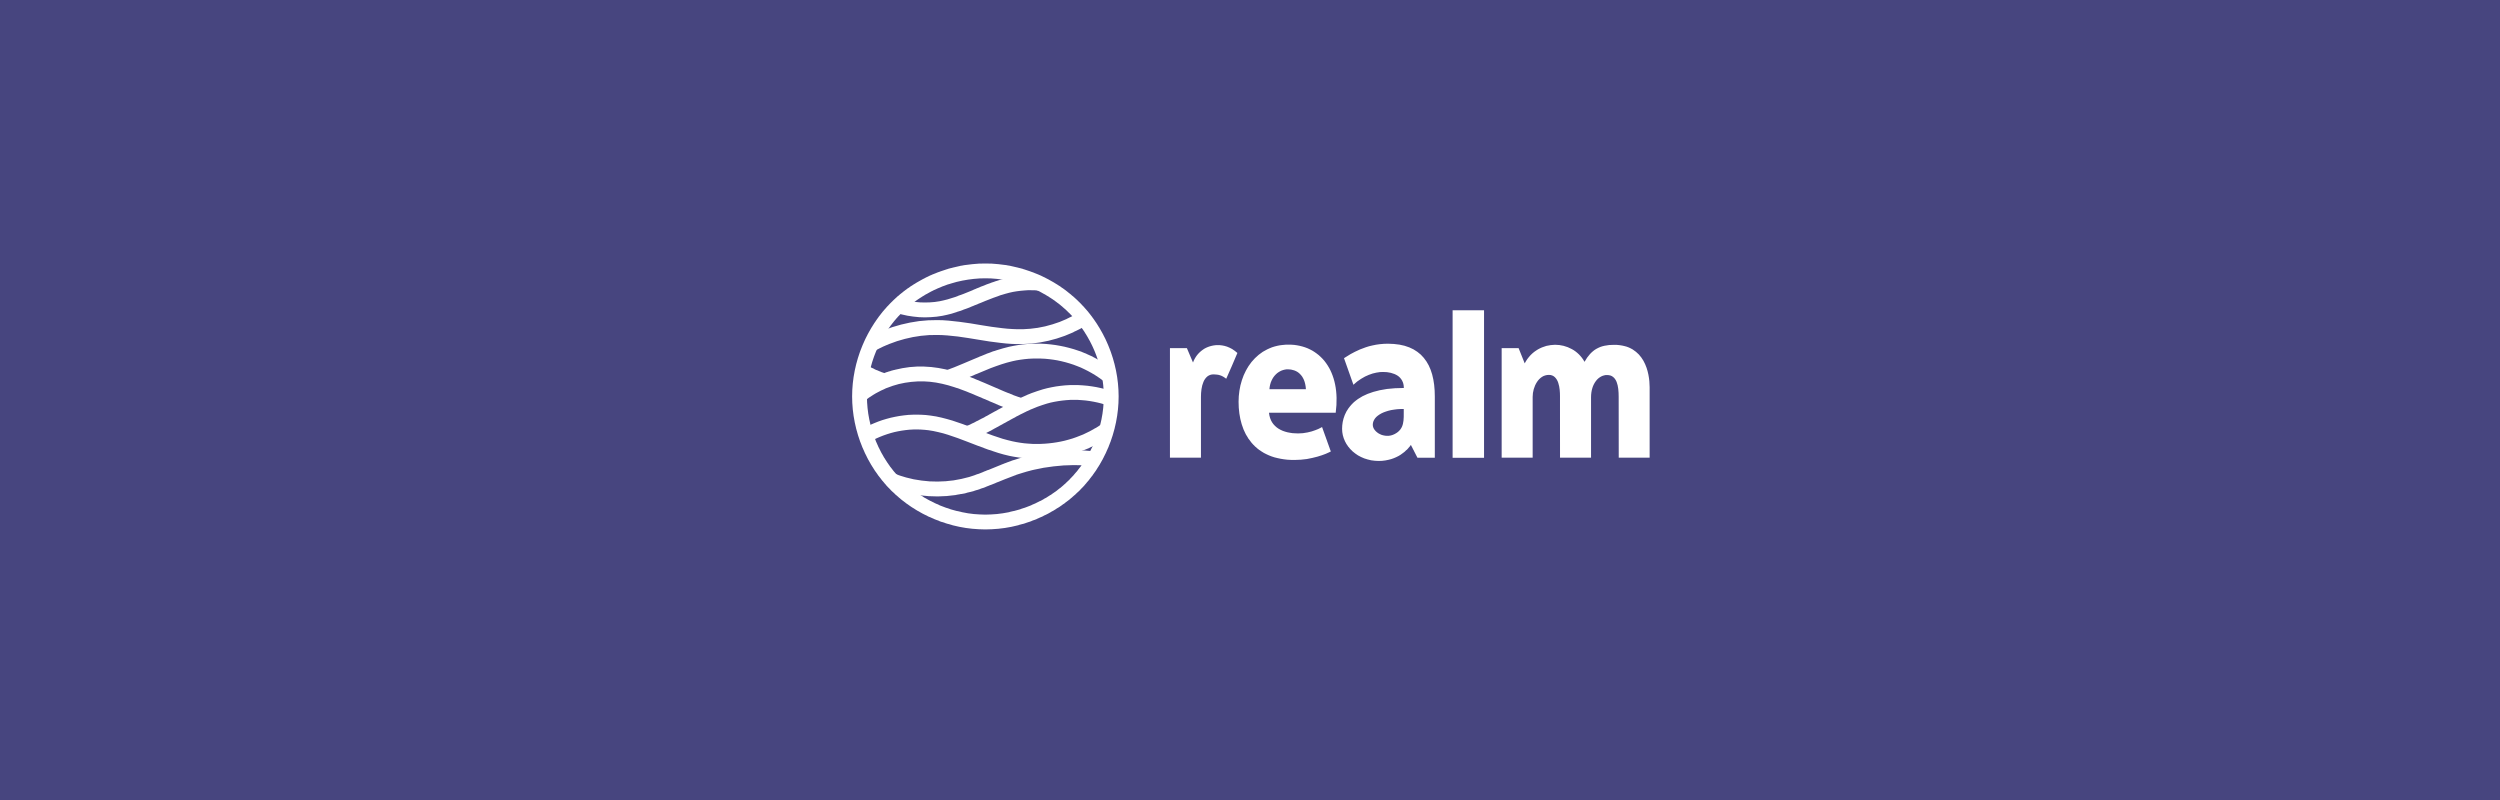 216d26d2835 How to use Realm for Android like a champ